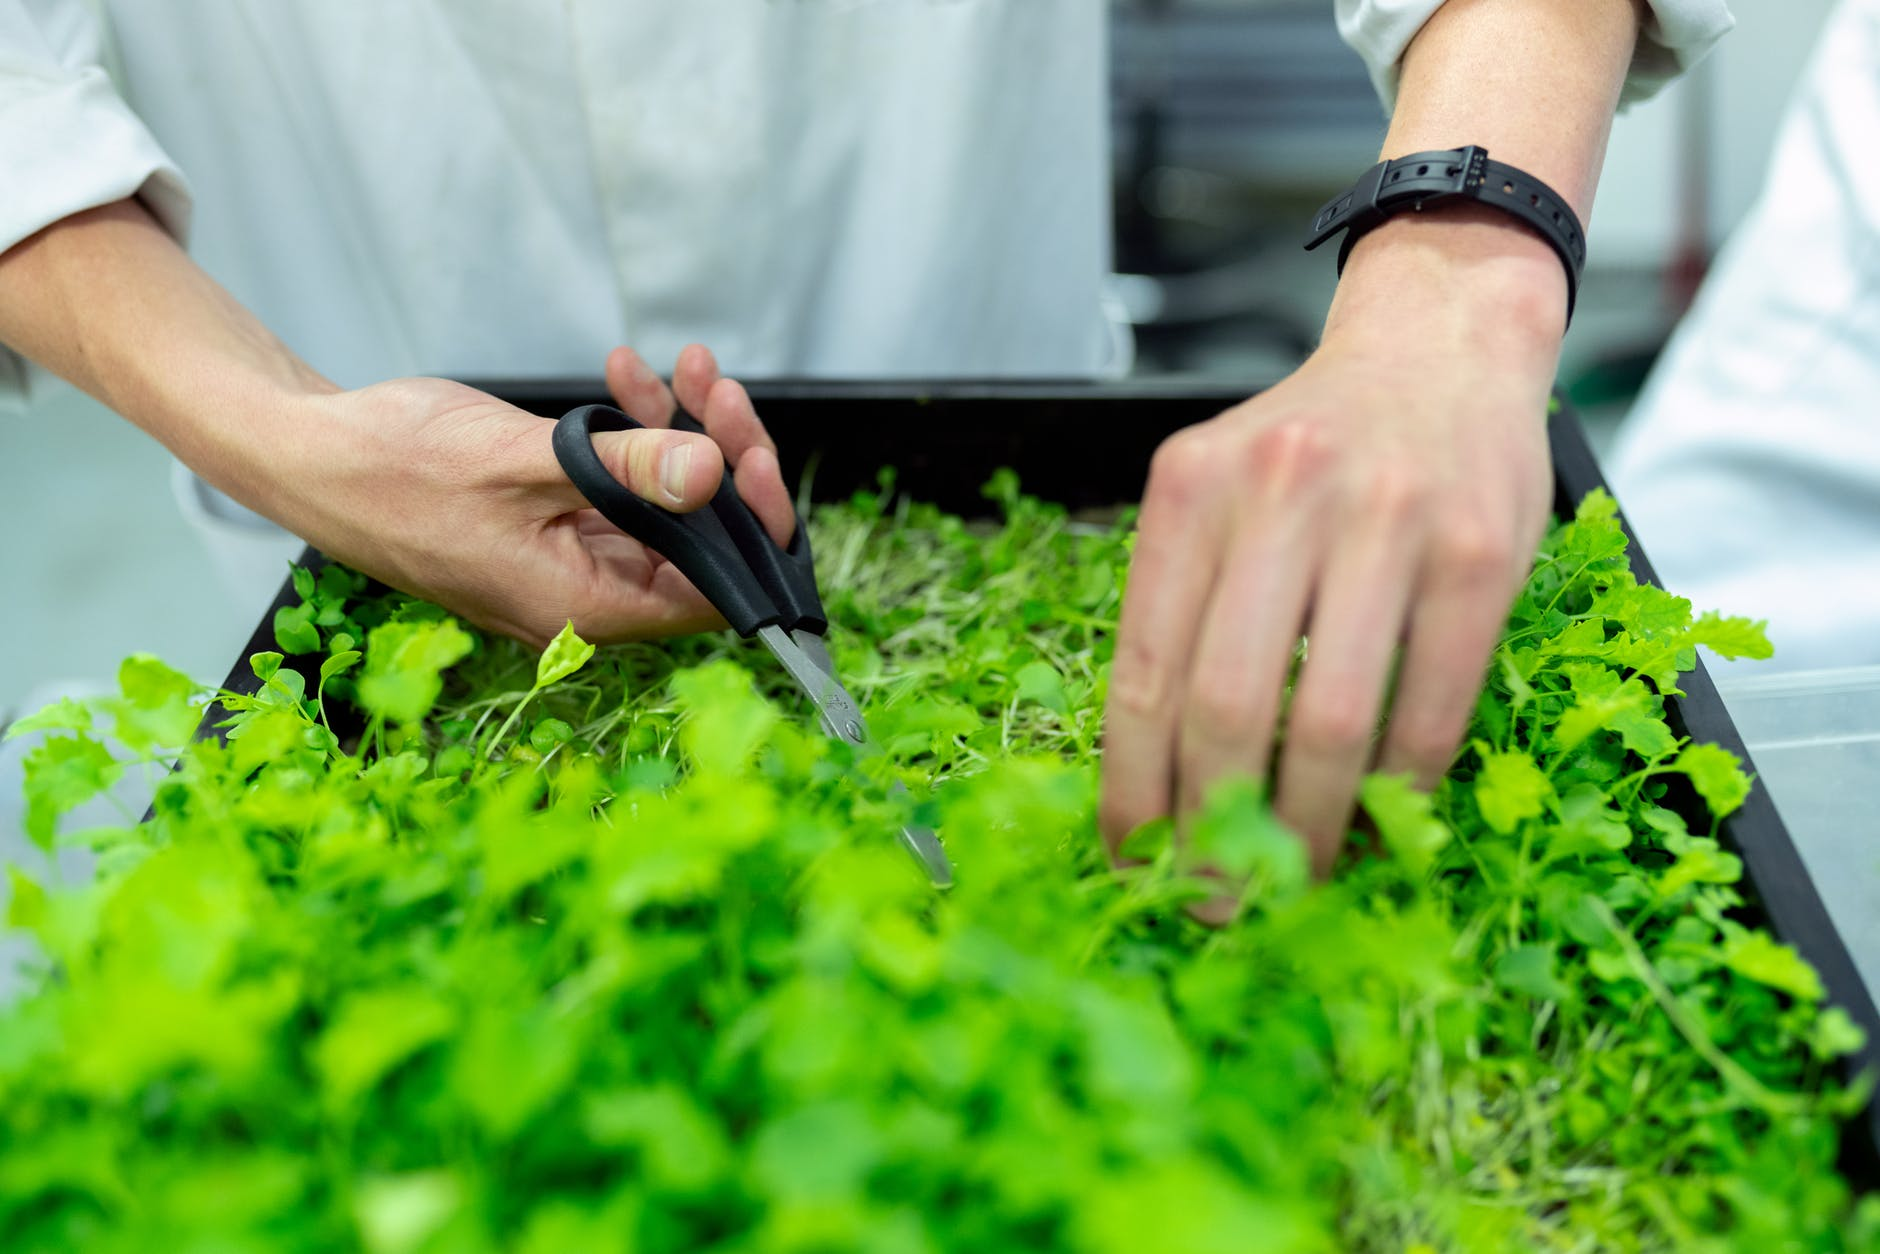 person holding black scissors and trimming greens, practising living sustainably during this pandemic